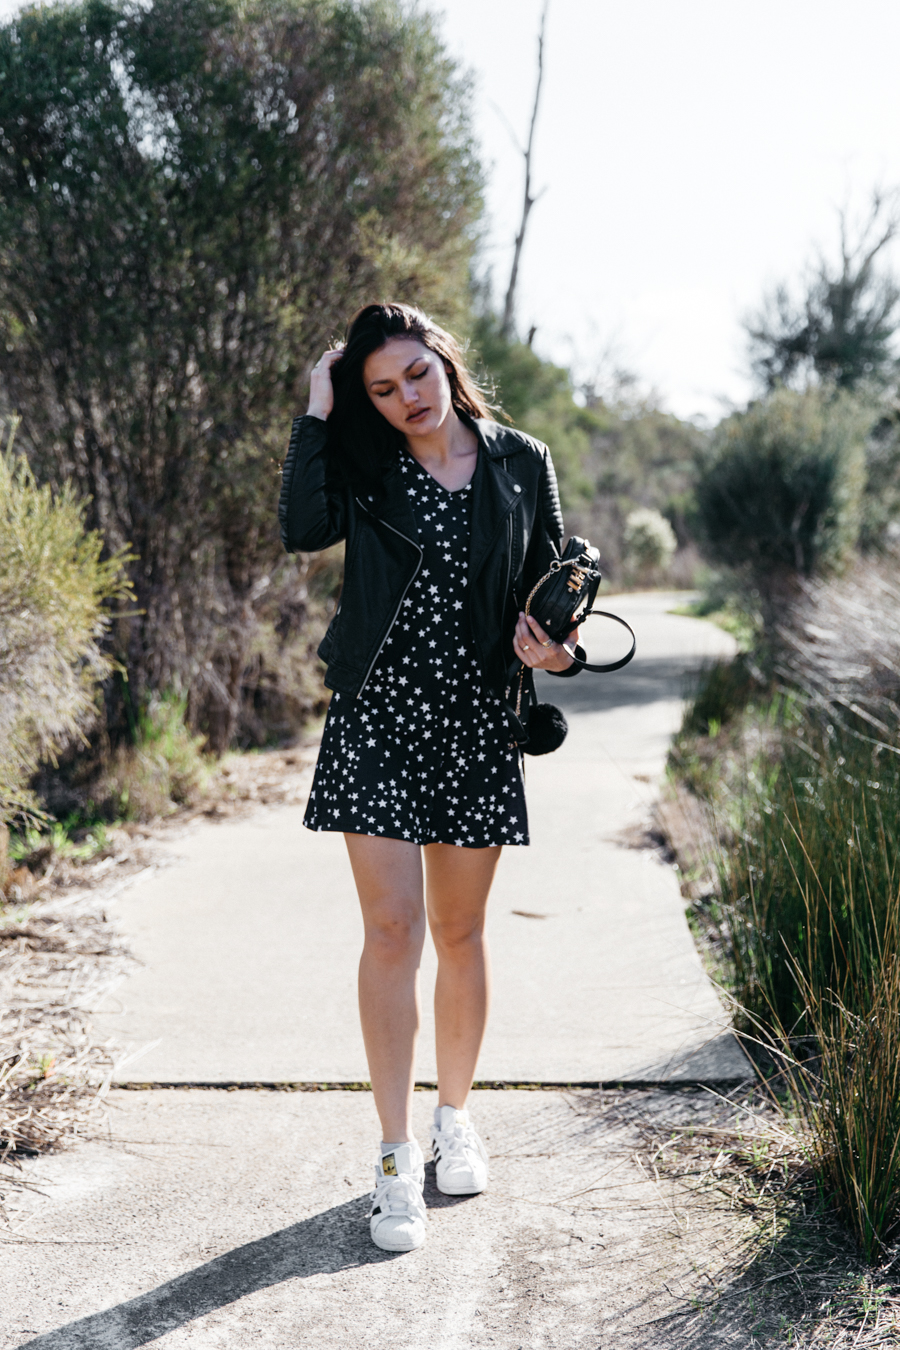 Star print dress outfit.